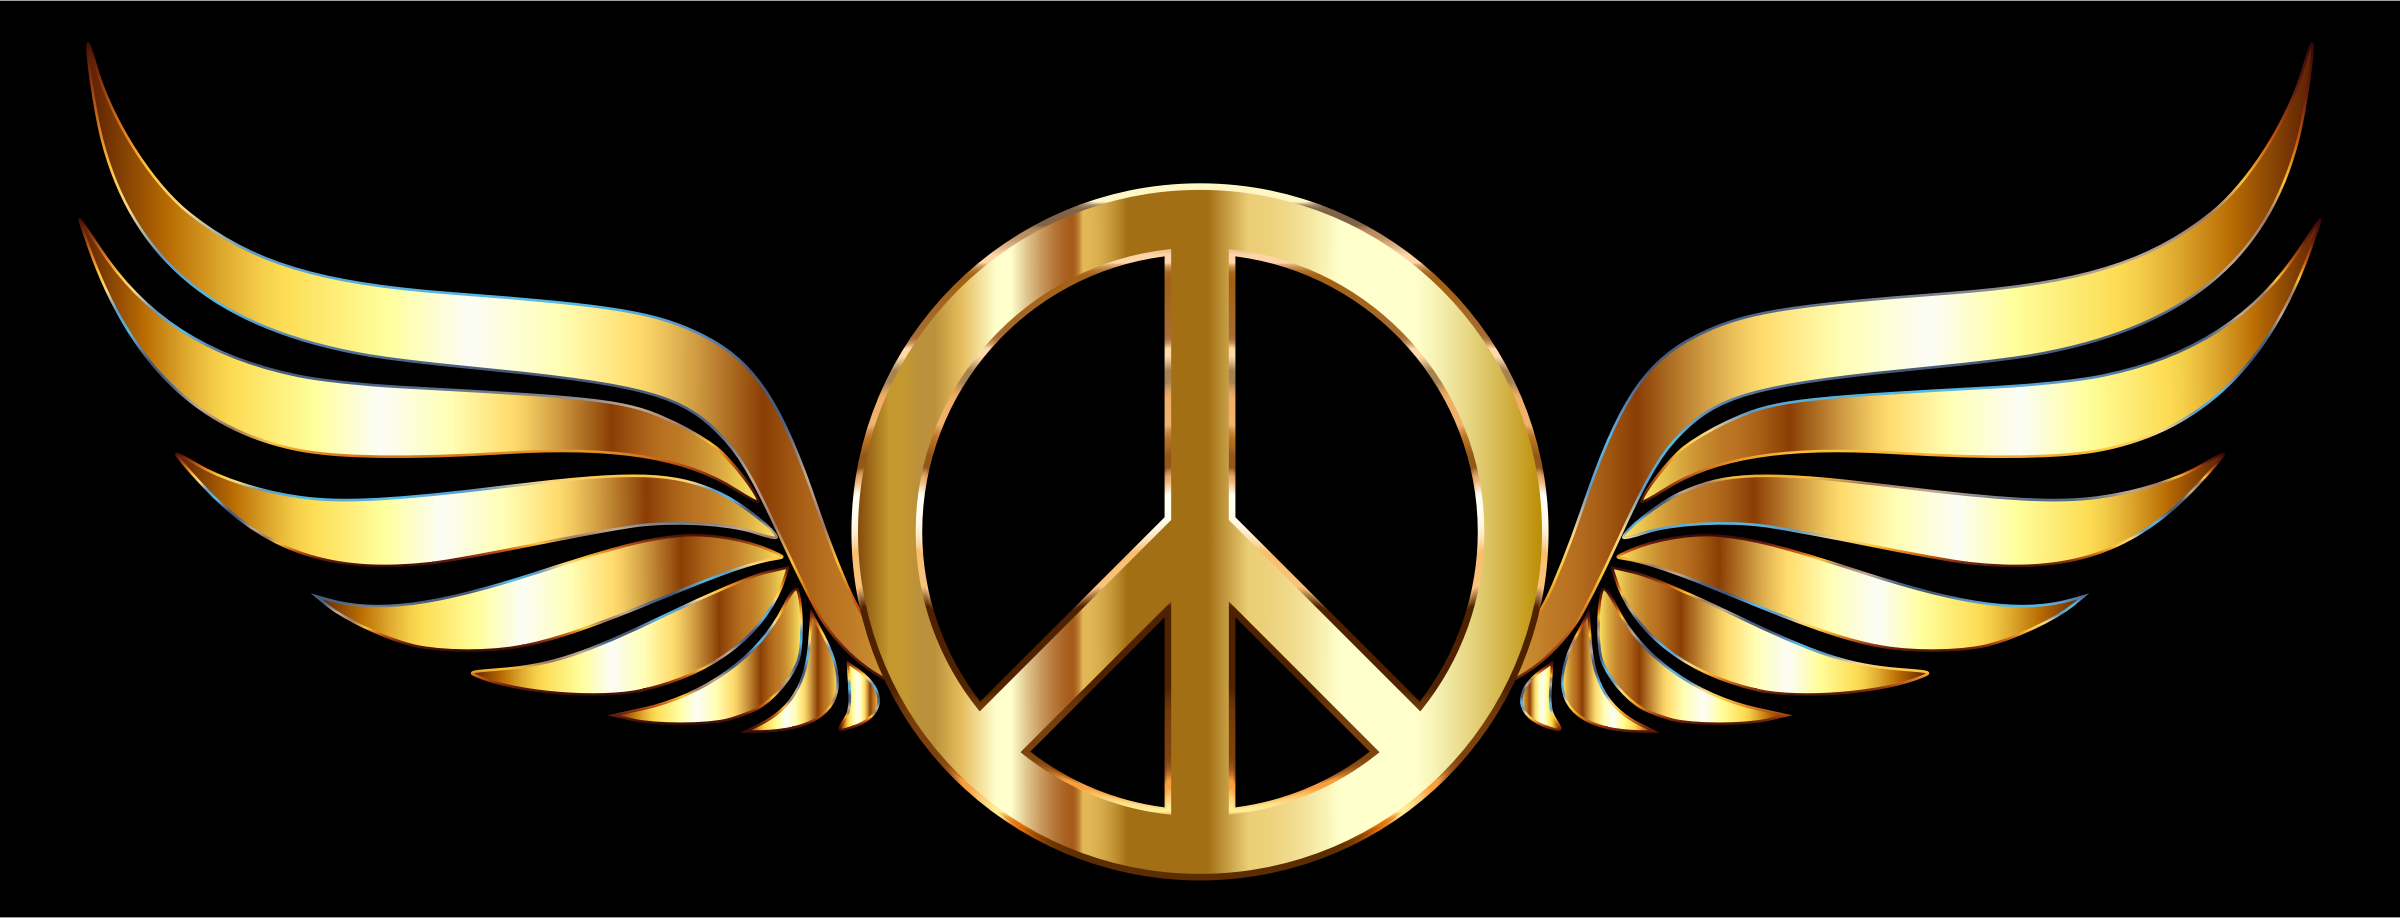 Gold Peace Sign Wings by GDJ